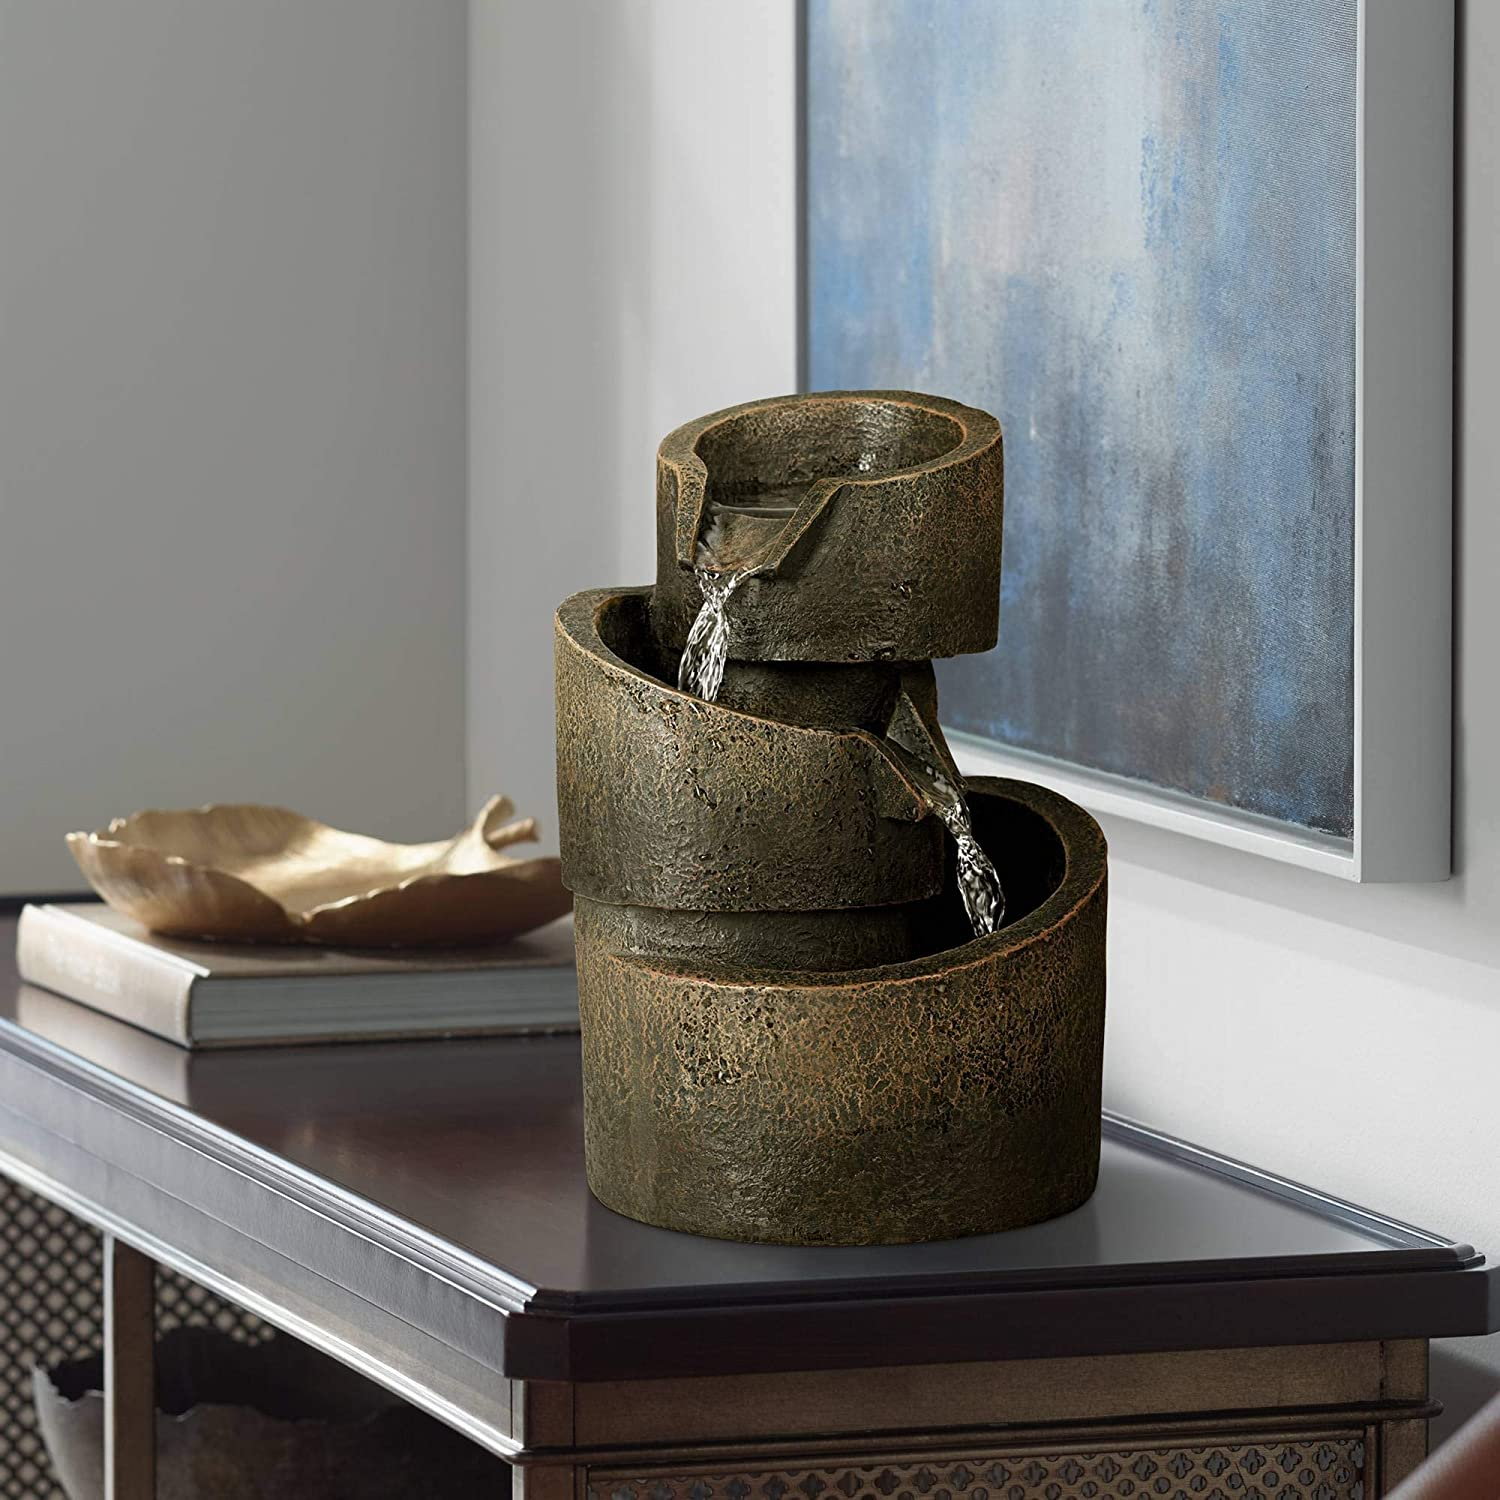 """Rustic Modern Zen Indoor Table-Top Water Fountain 9 3/4"""" High Cascading for Table Desk Office Home Bedroom Relaxation - John Timberland: Home & Kitchen"""